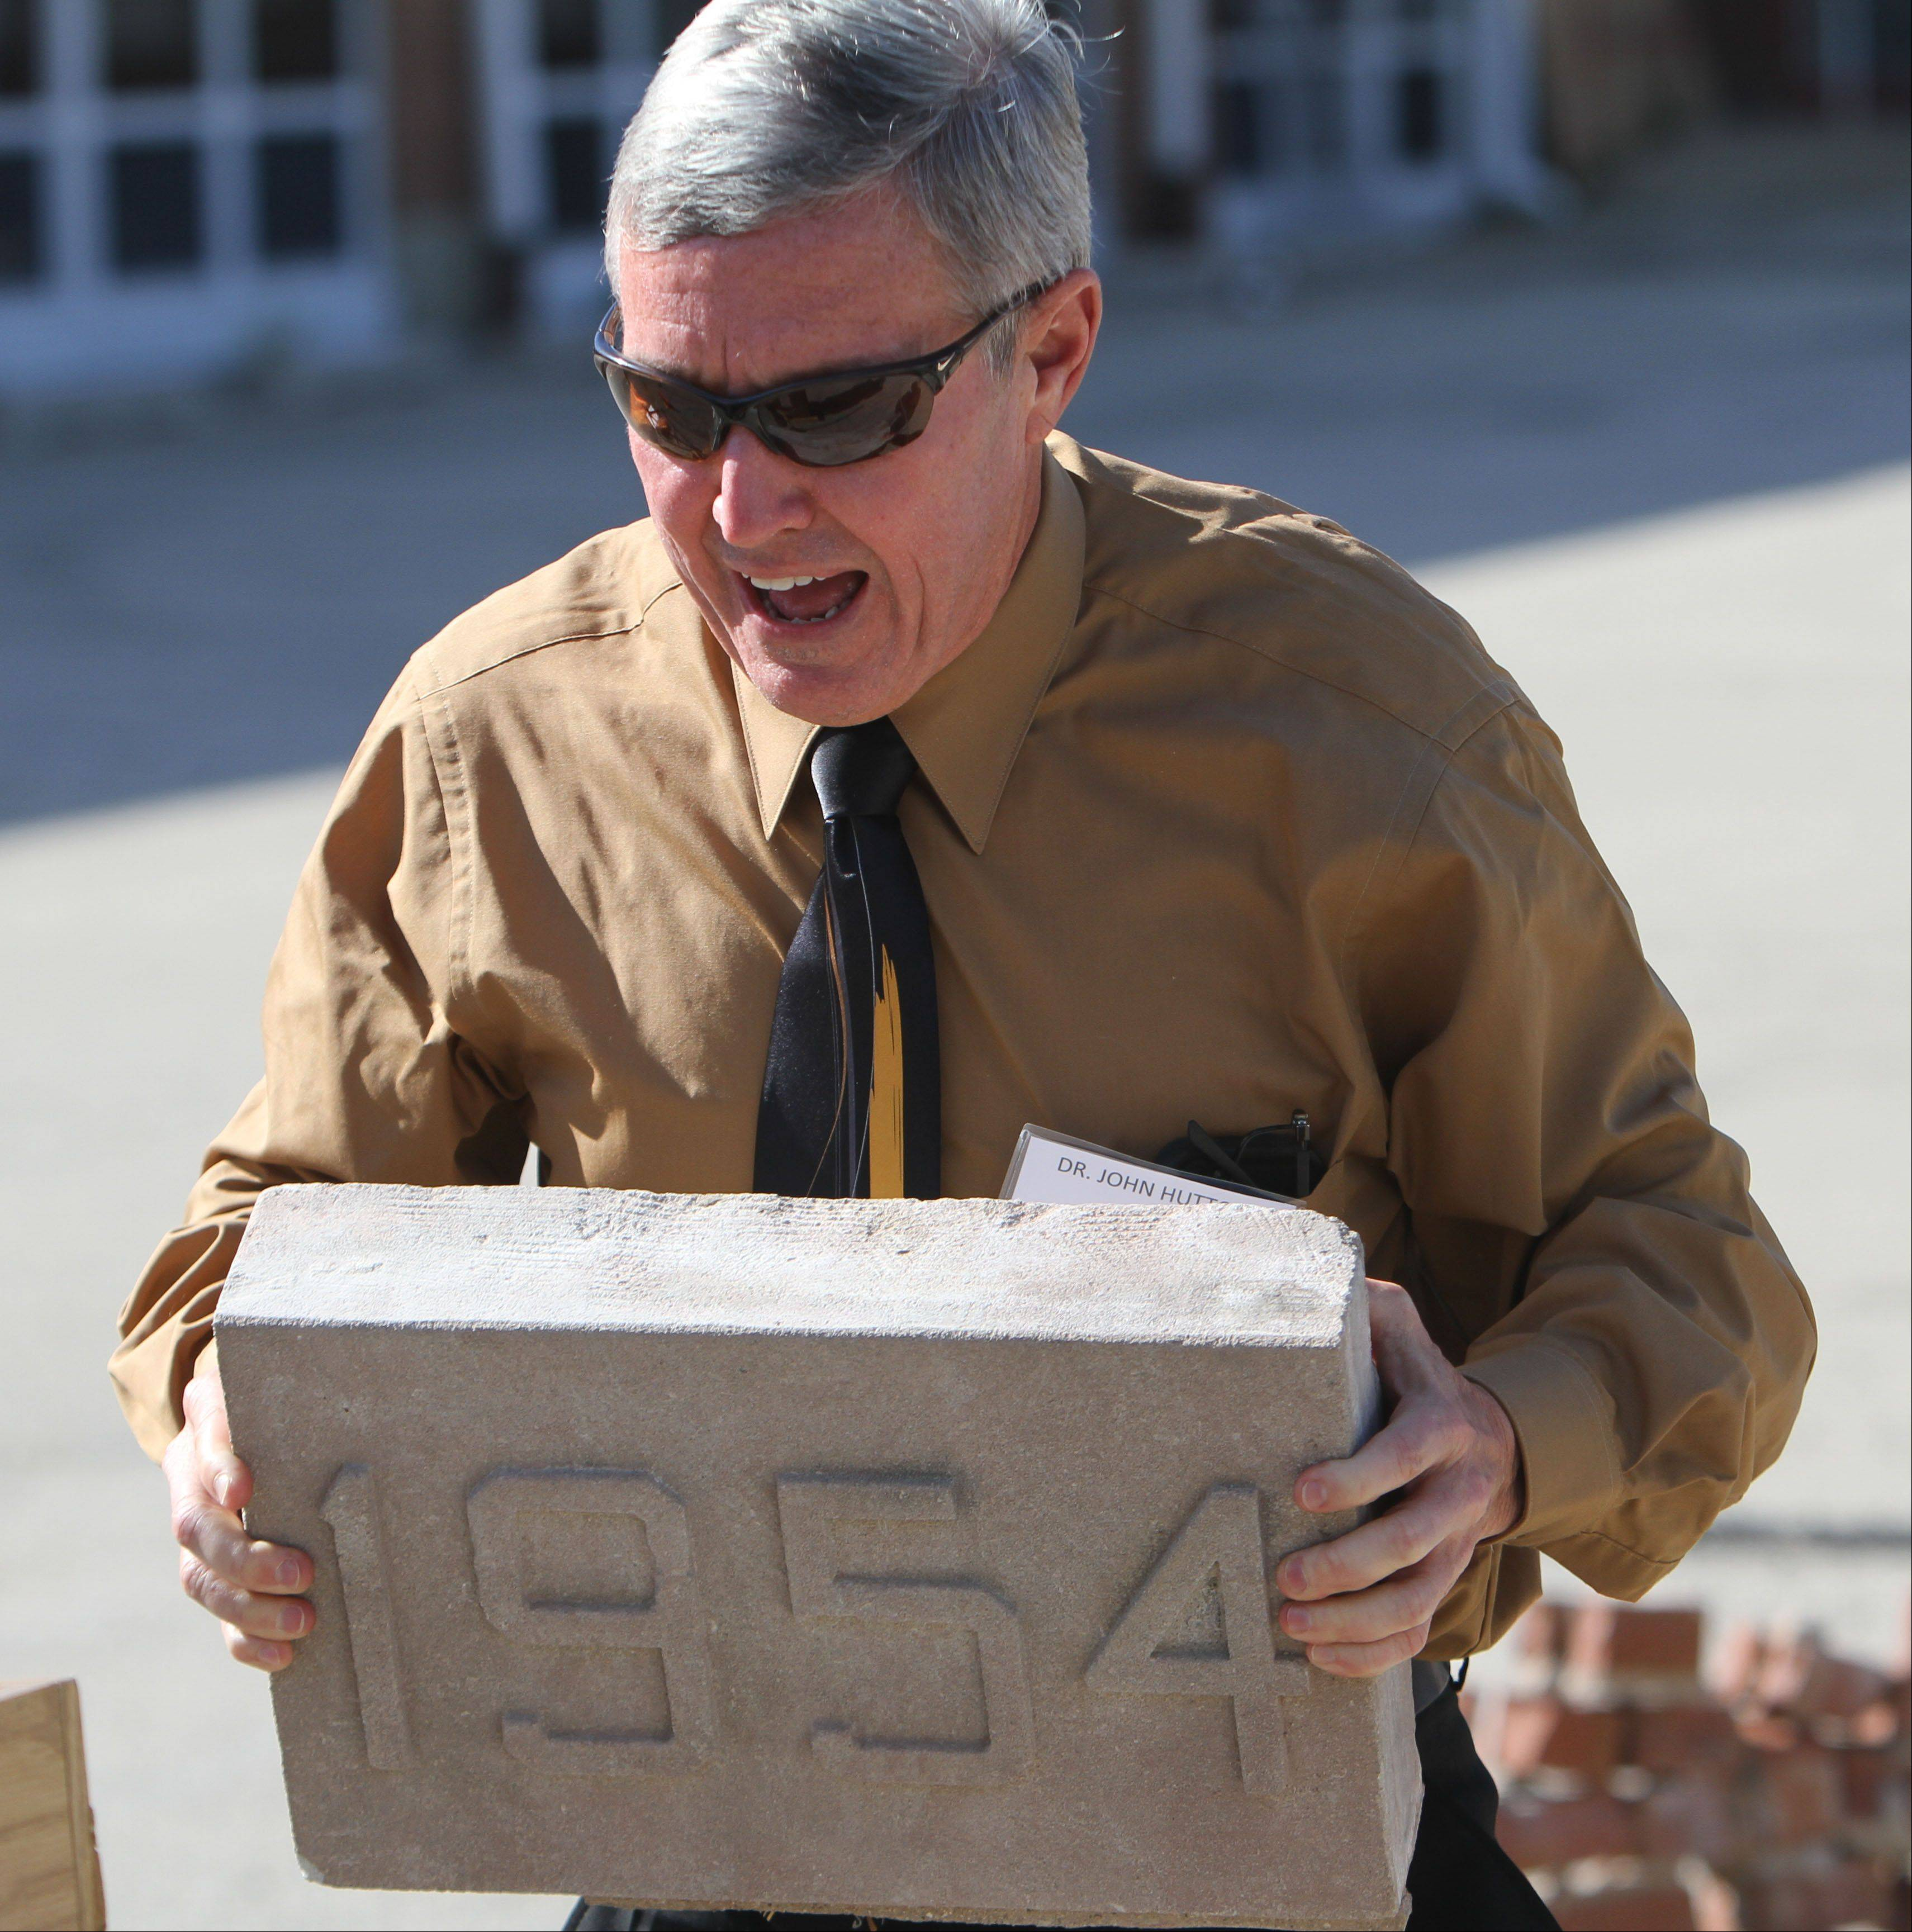 Gurnee Elementary District 56 Superintendent John Hutton holds the cornerstone from the Gurnee Grade School during an event Monday marking the beginning of demolition.